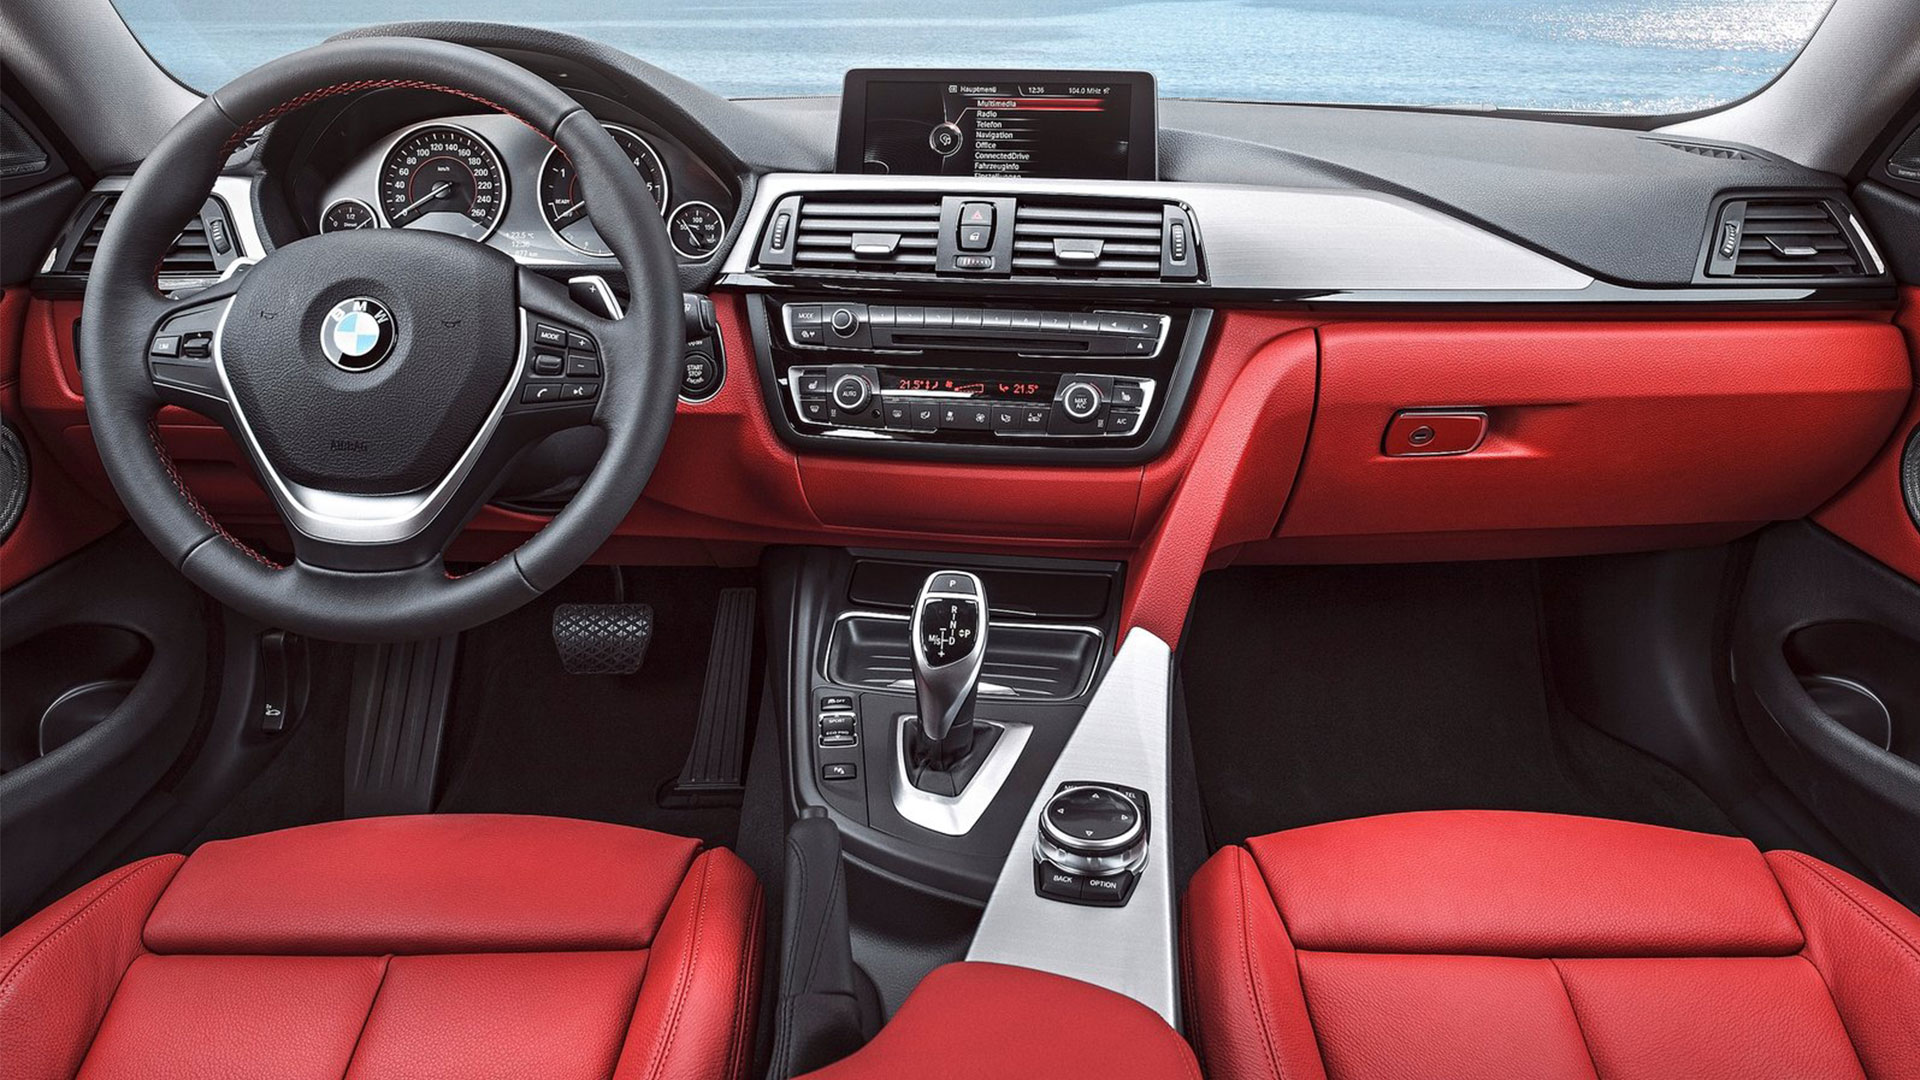 lovely red interior cars for sale near me used cars